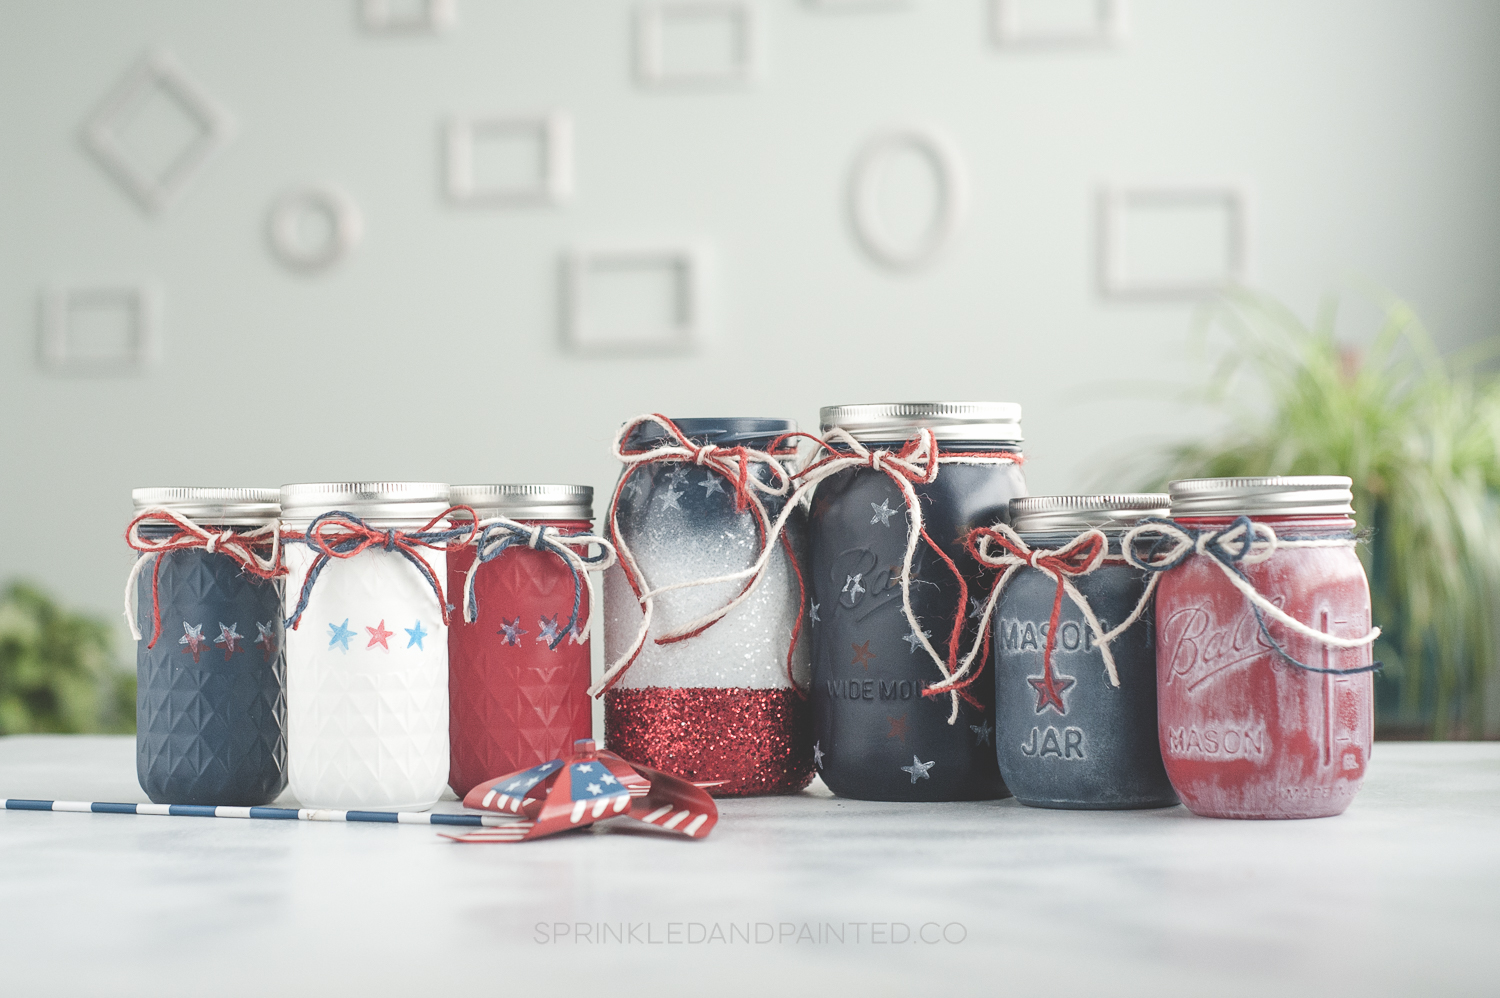 4th of july mason jar centerpiece vases.